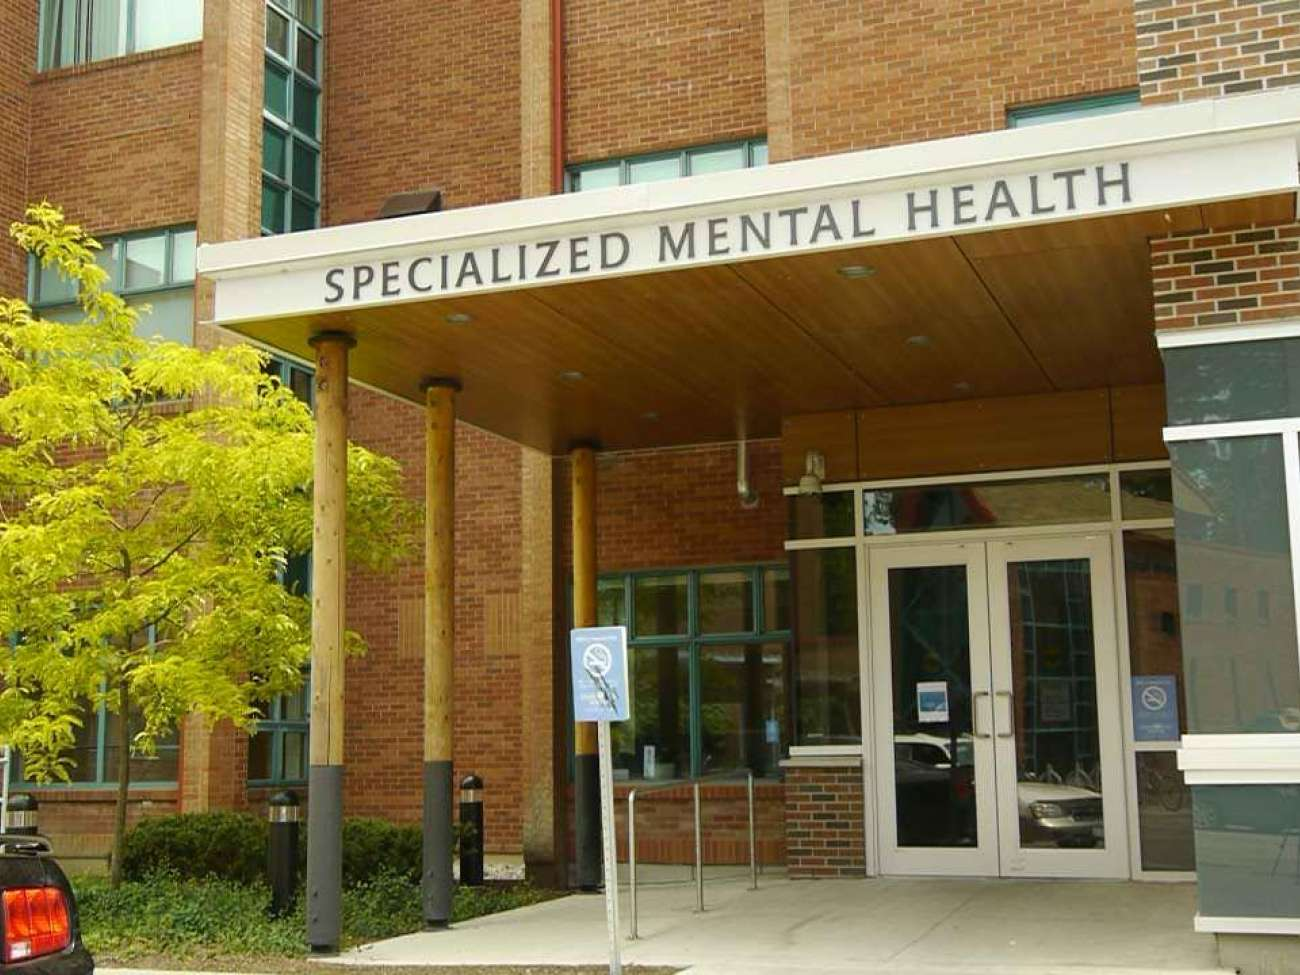 Specialized mental health entrance